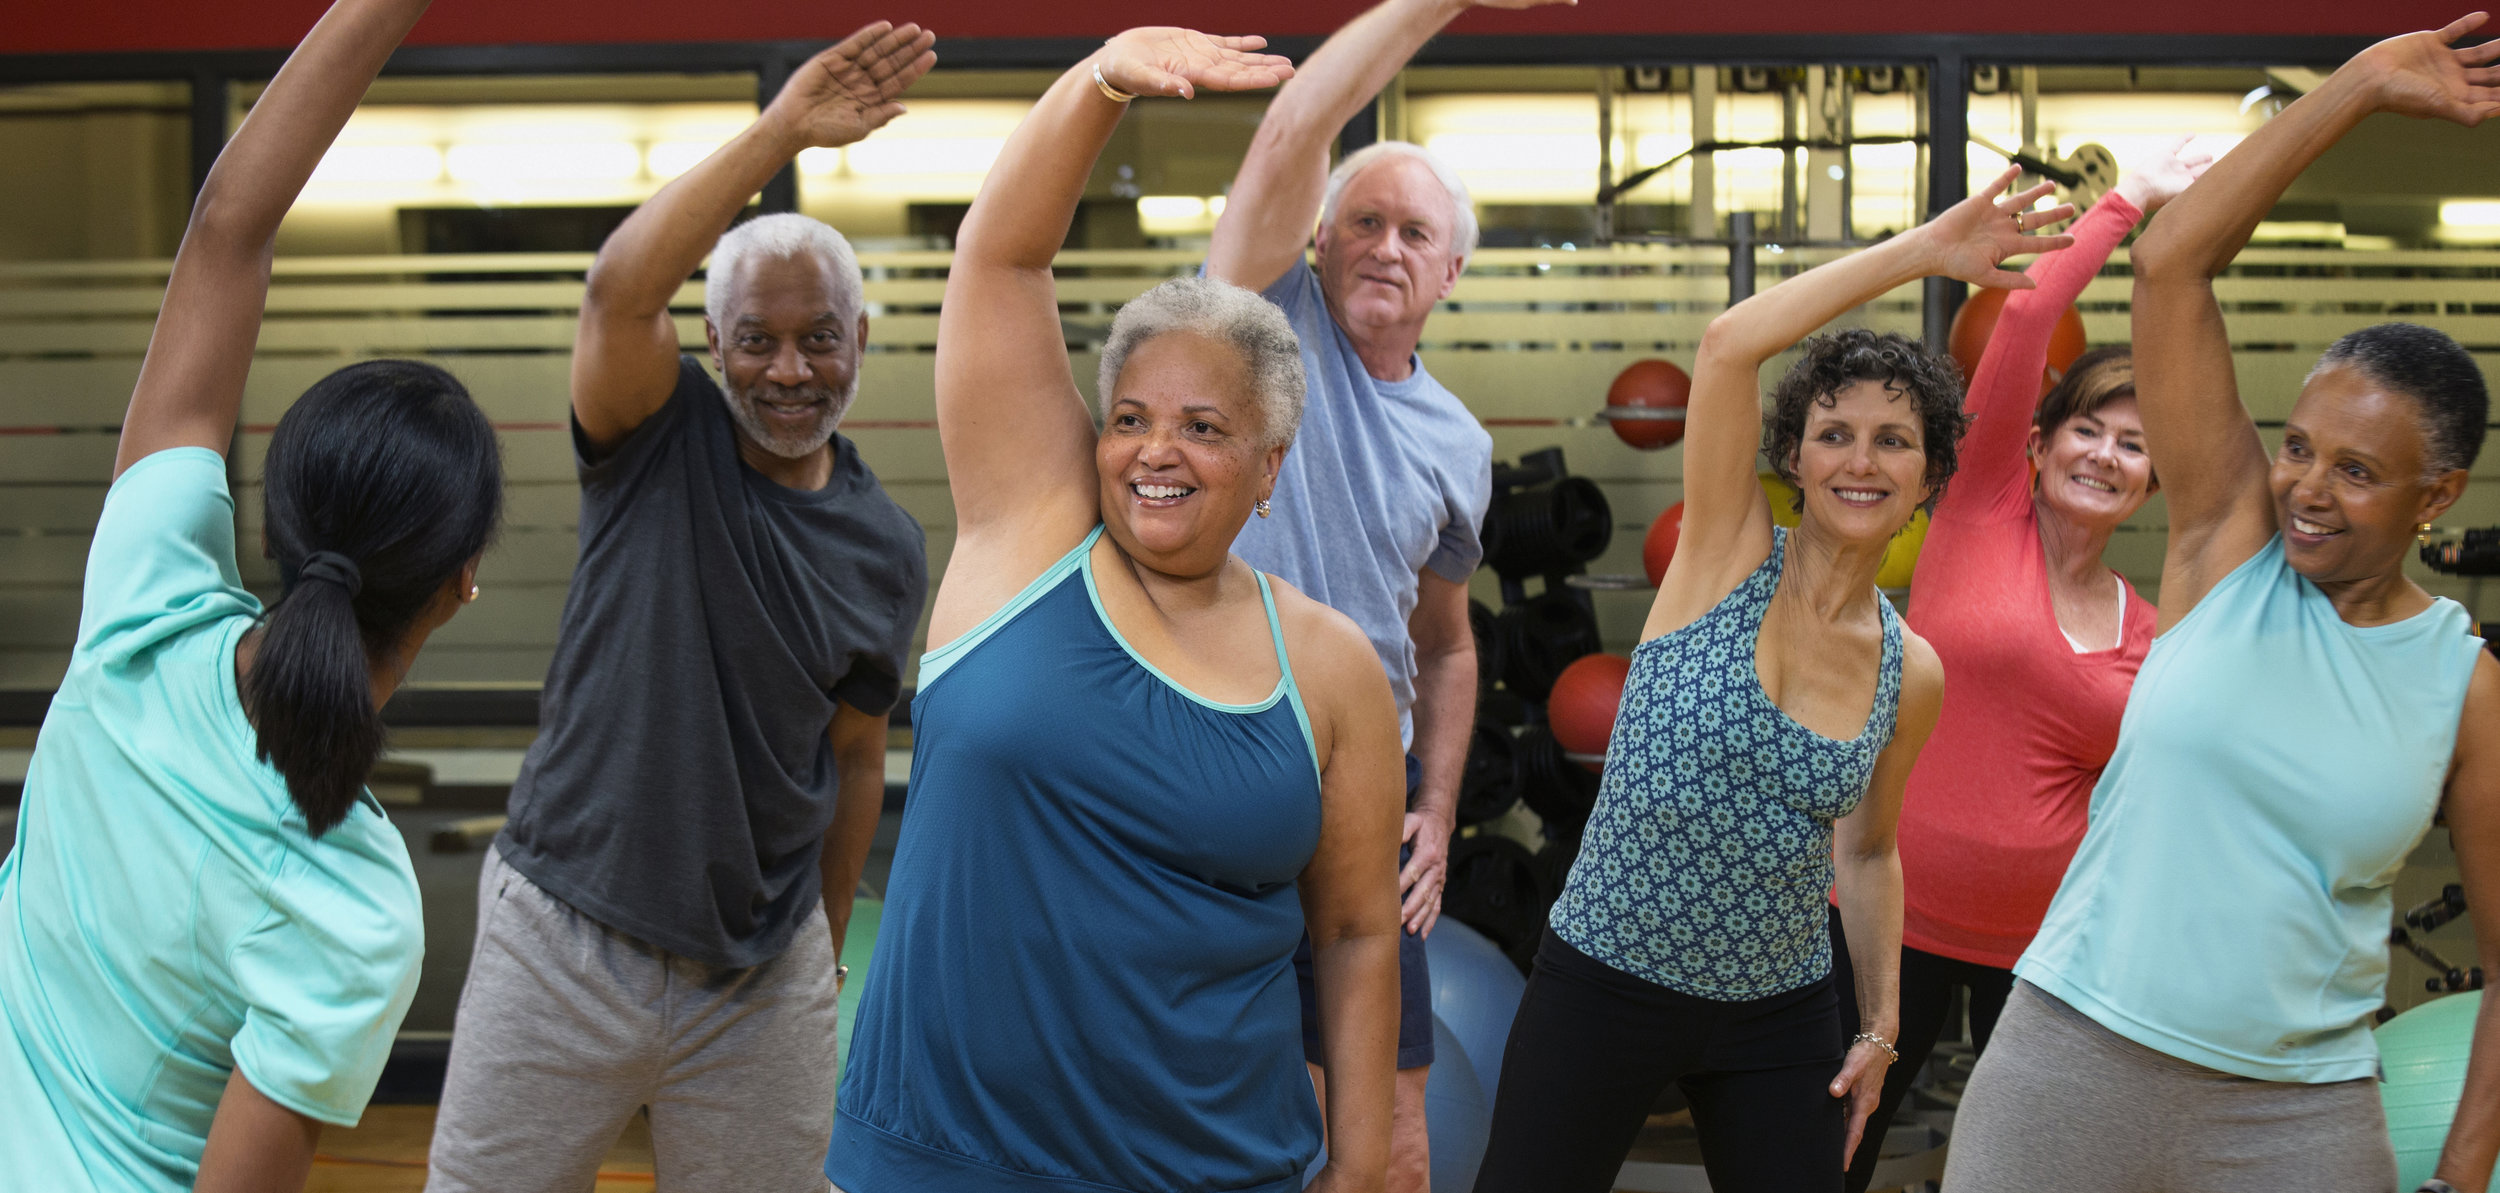 Fitness is as diverse as the individuals. Photo via ACE.org